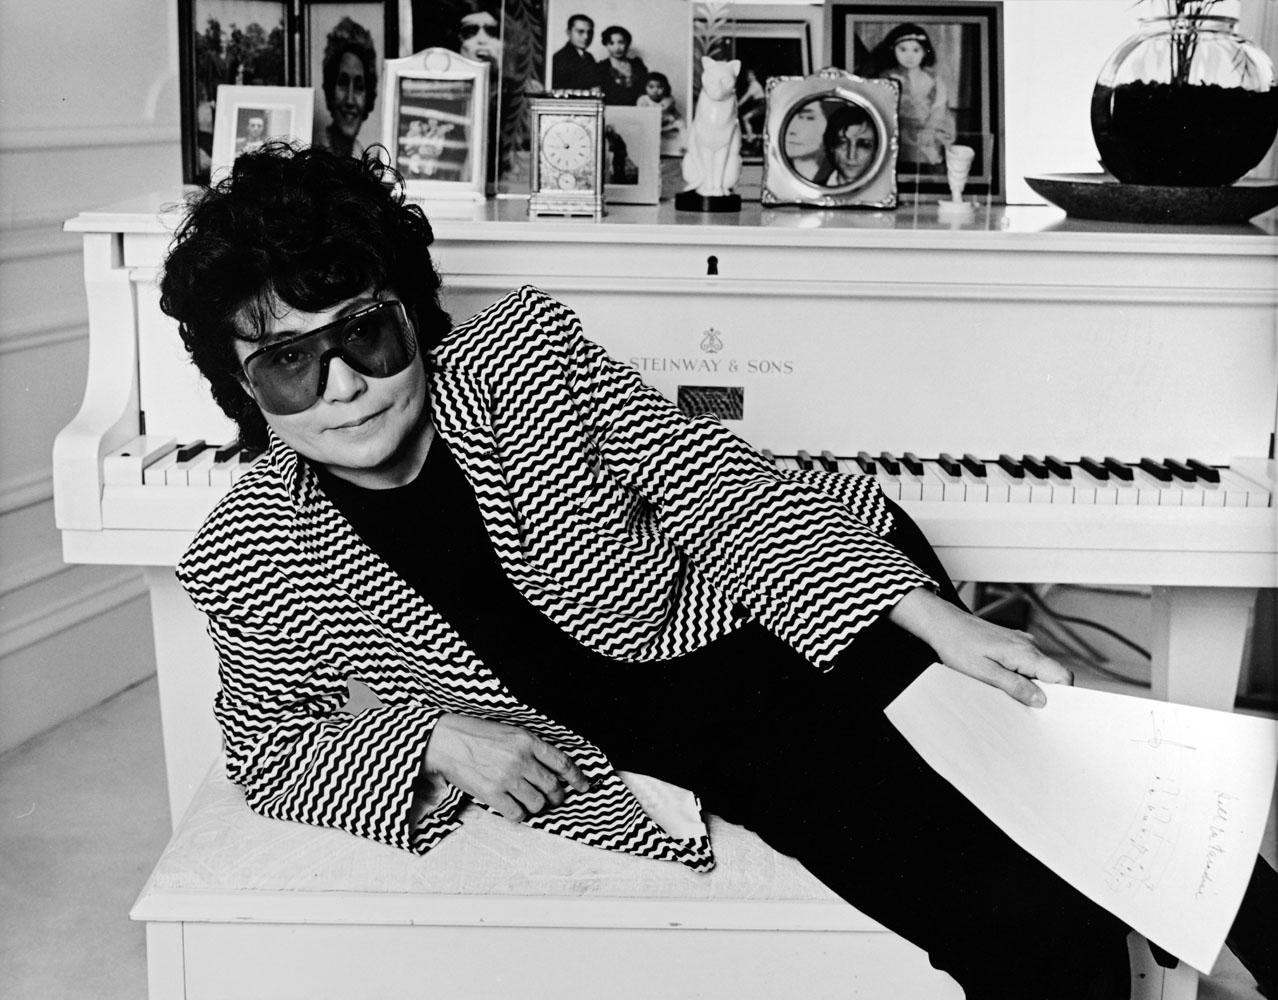 Artist and Musician Yoko Ono photographed at her Dakota apartment in NYC